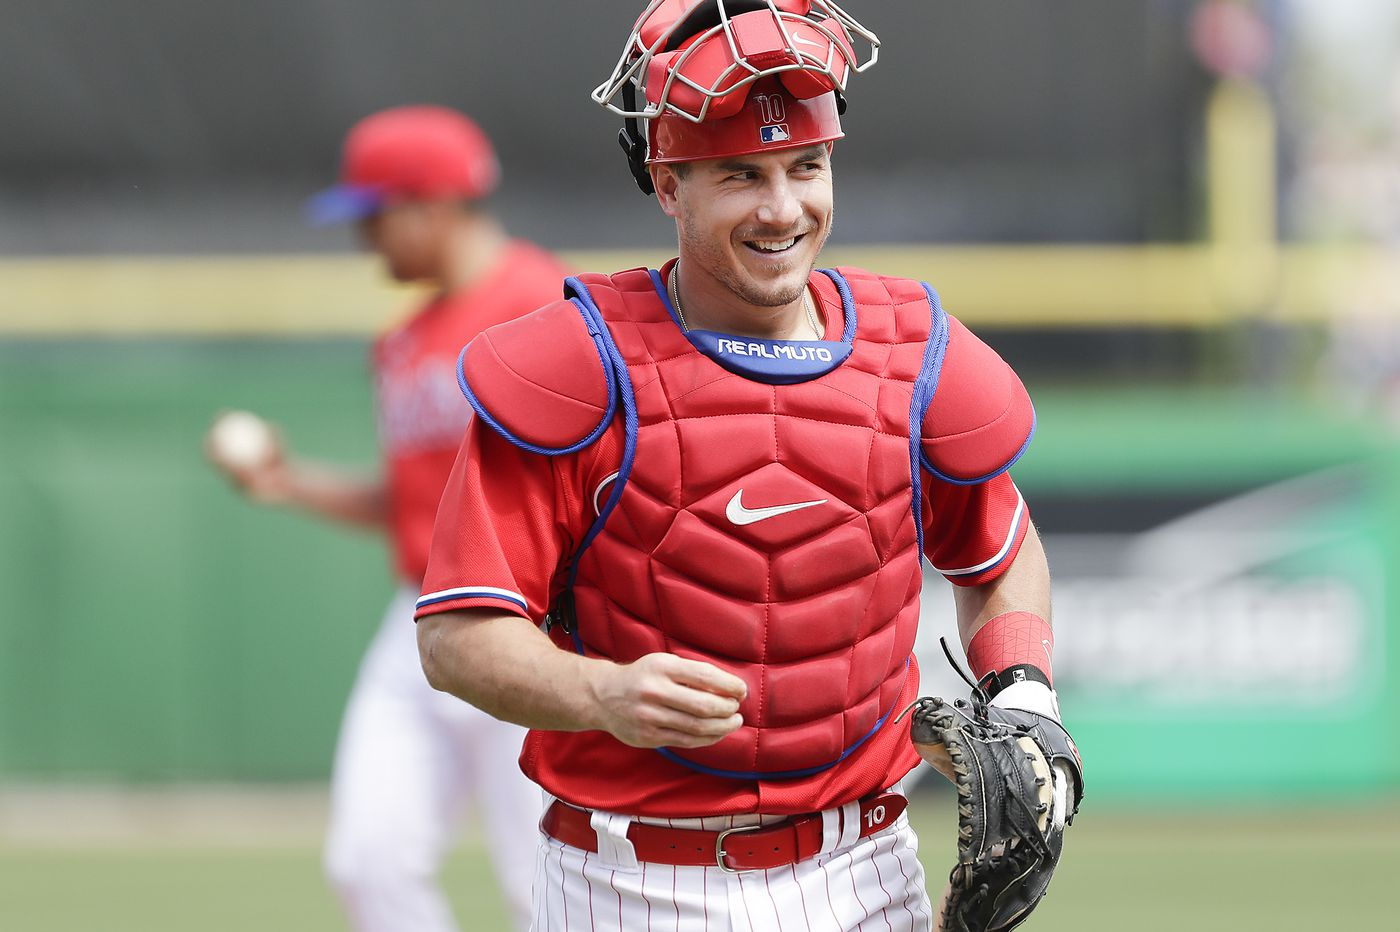 J.T. Realmuto's contract talks on hold as Phillies order exodus from spring training facility